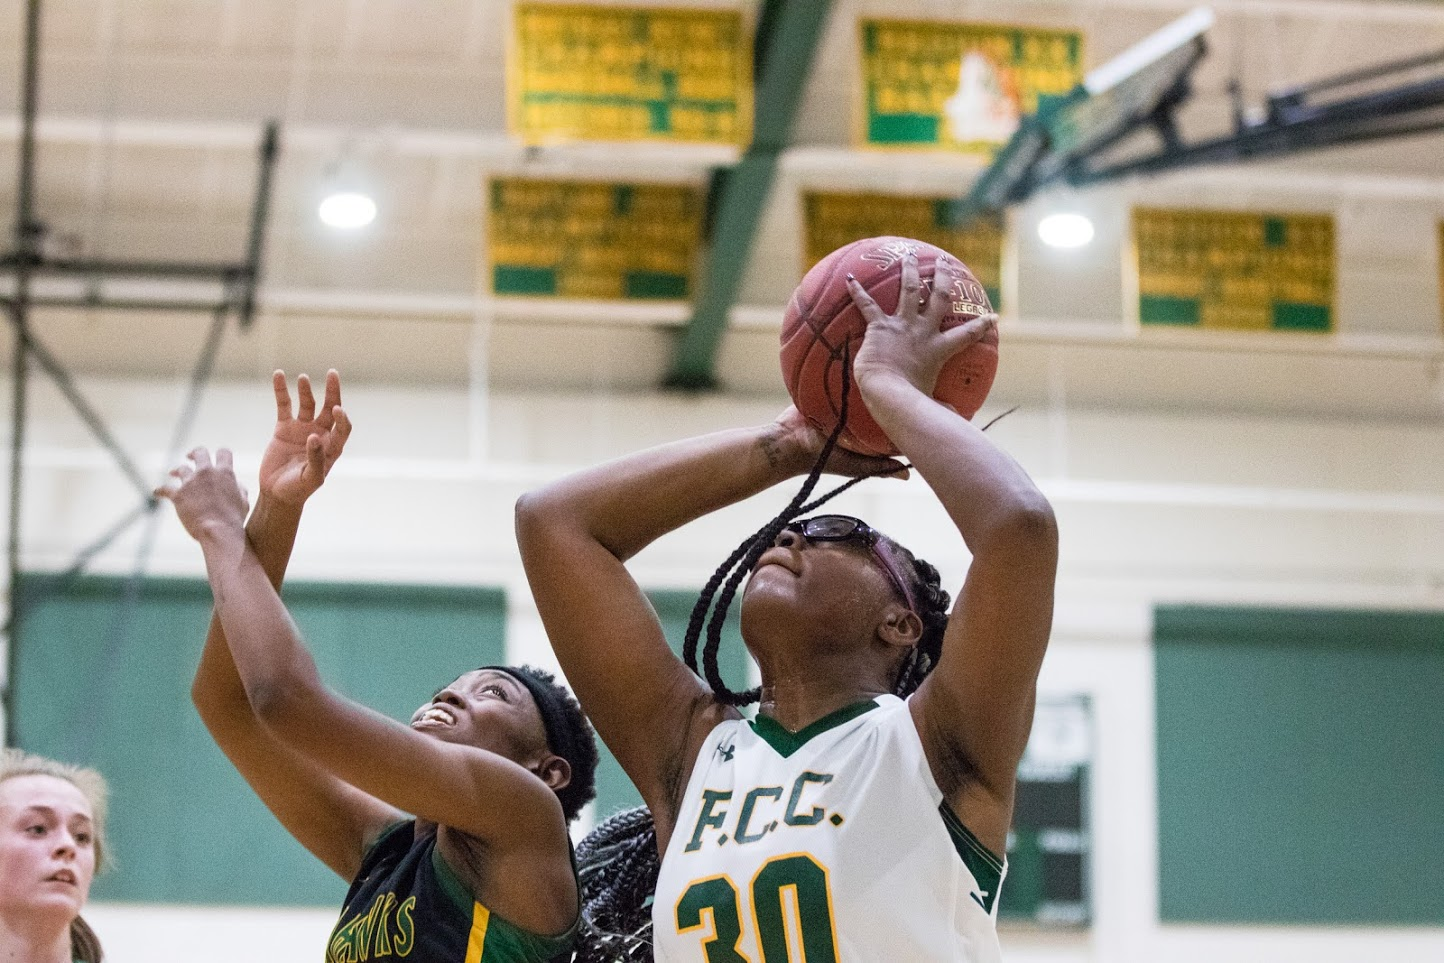 FCC Rolls Past PGCC, Wins Fifth In A Row